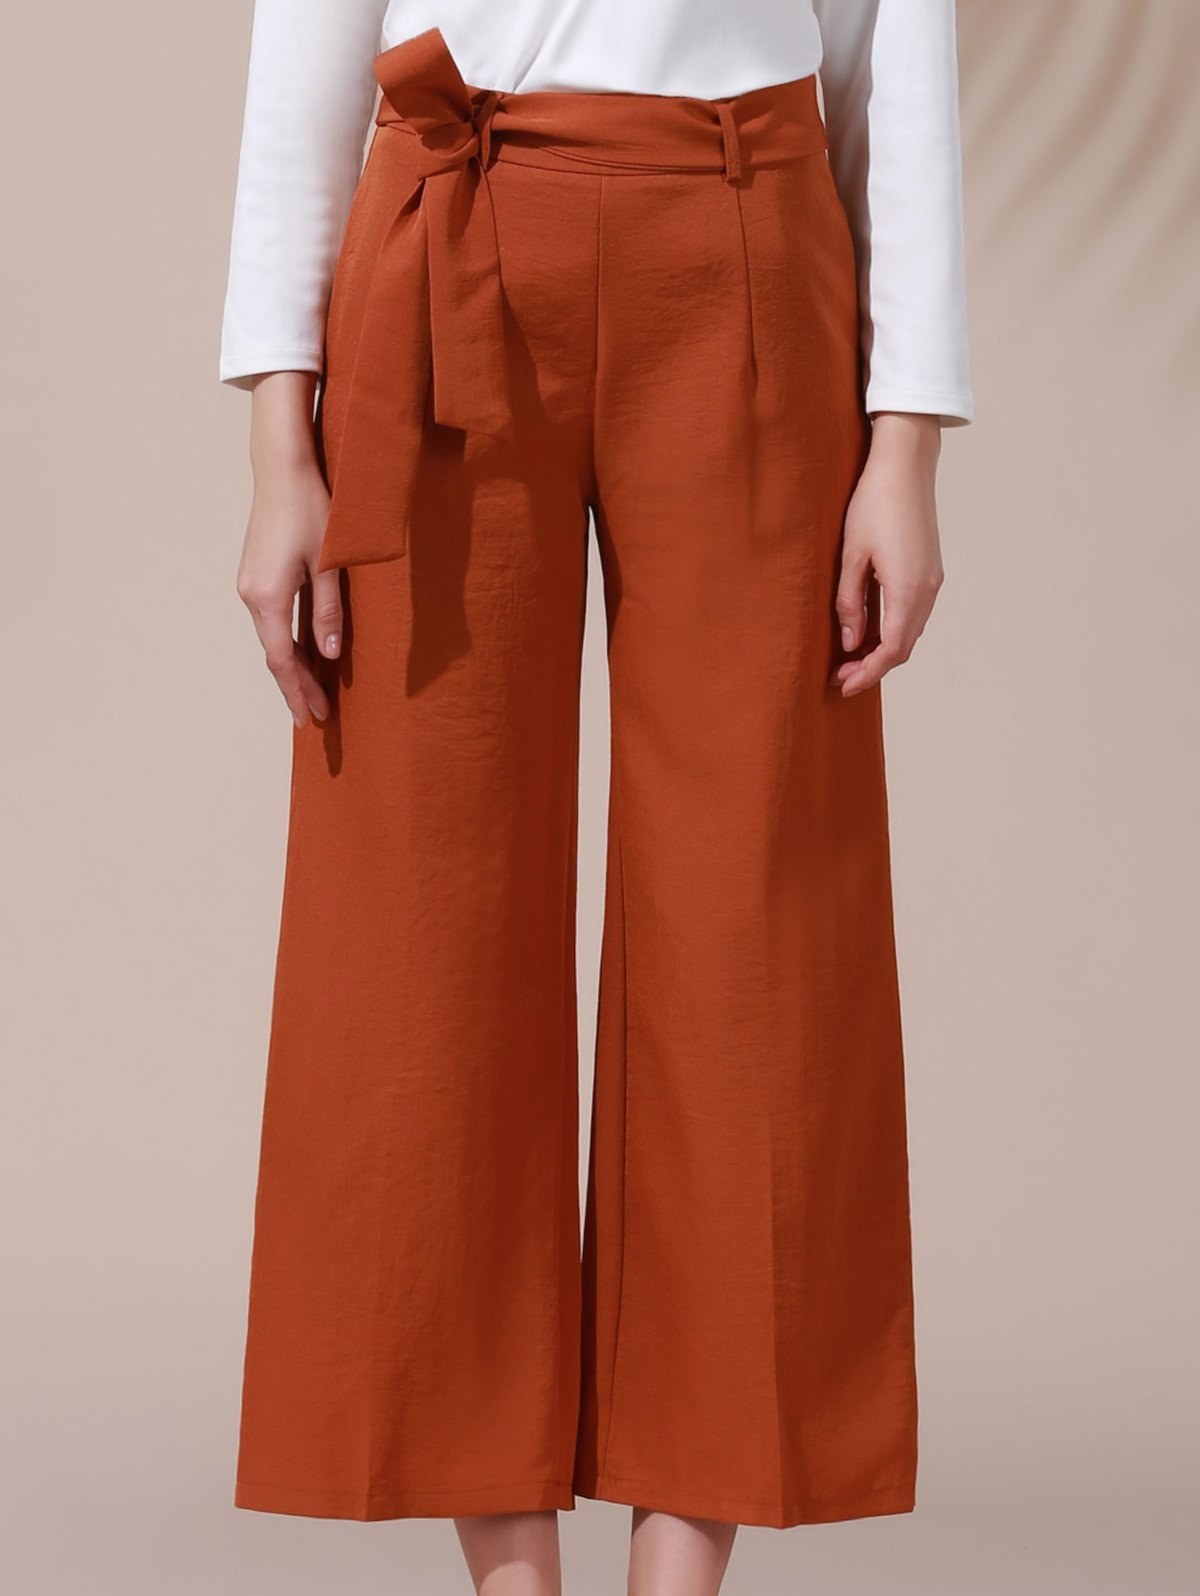 High Waist Solid Color Belted Wide Leg Pant